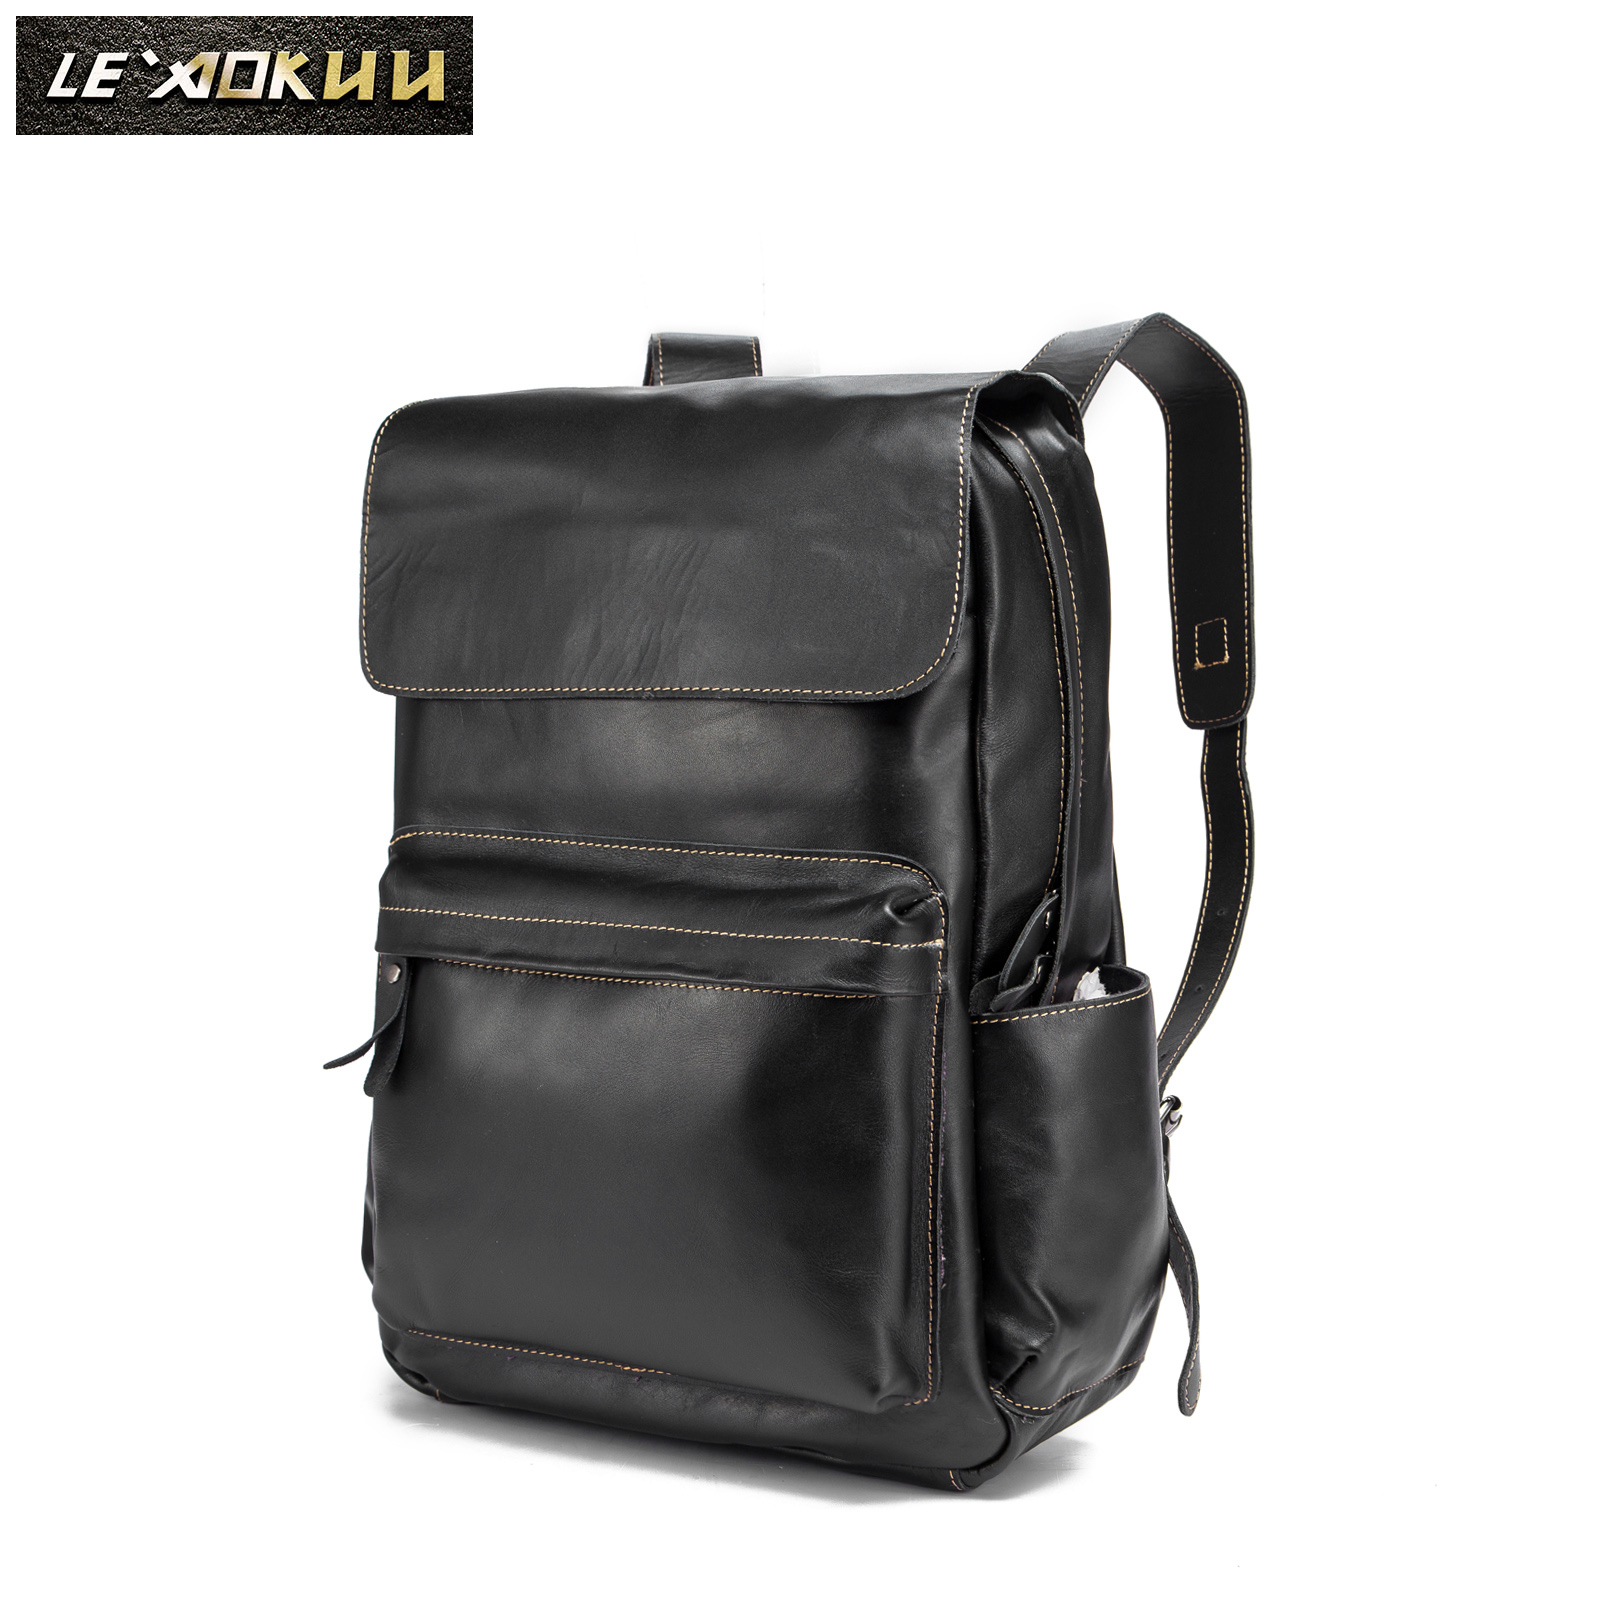 Original Genuine Leather Design University Student School Book Bag Male Fashion Daypack Backpack Travel 15